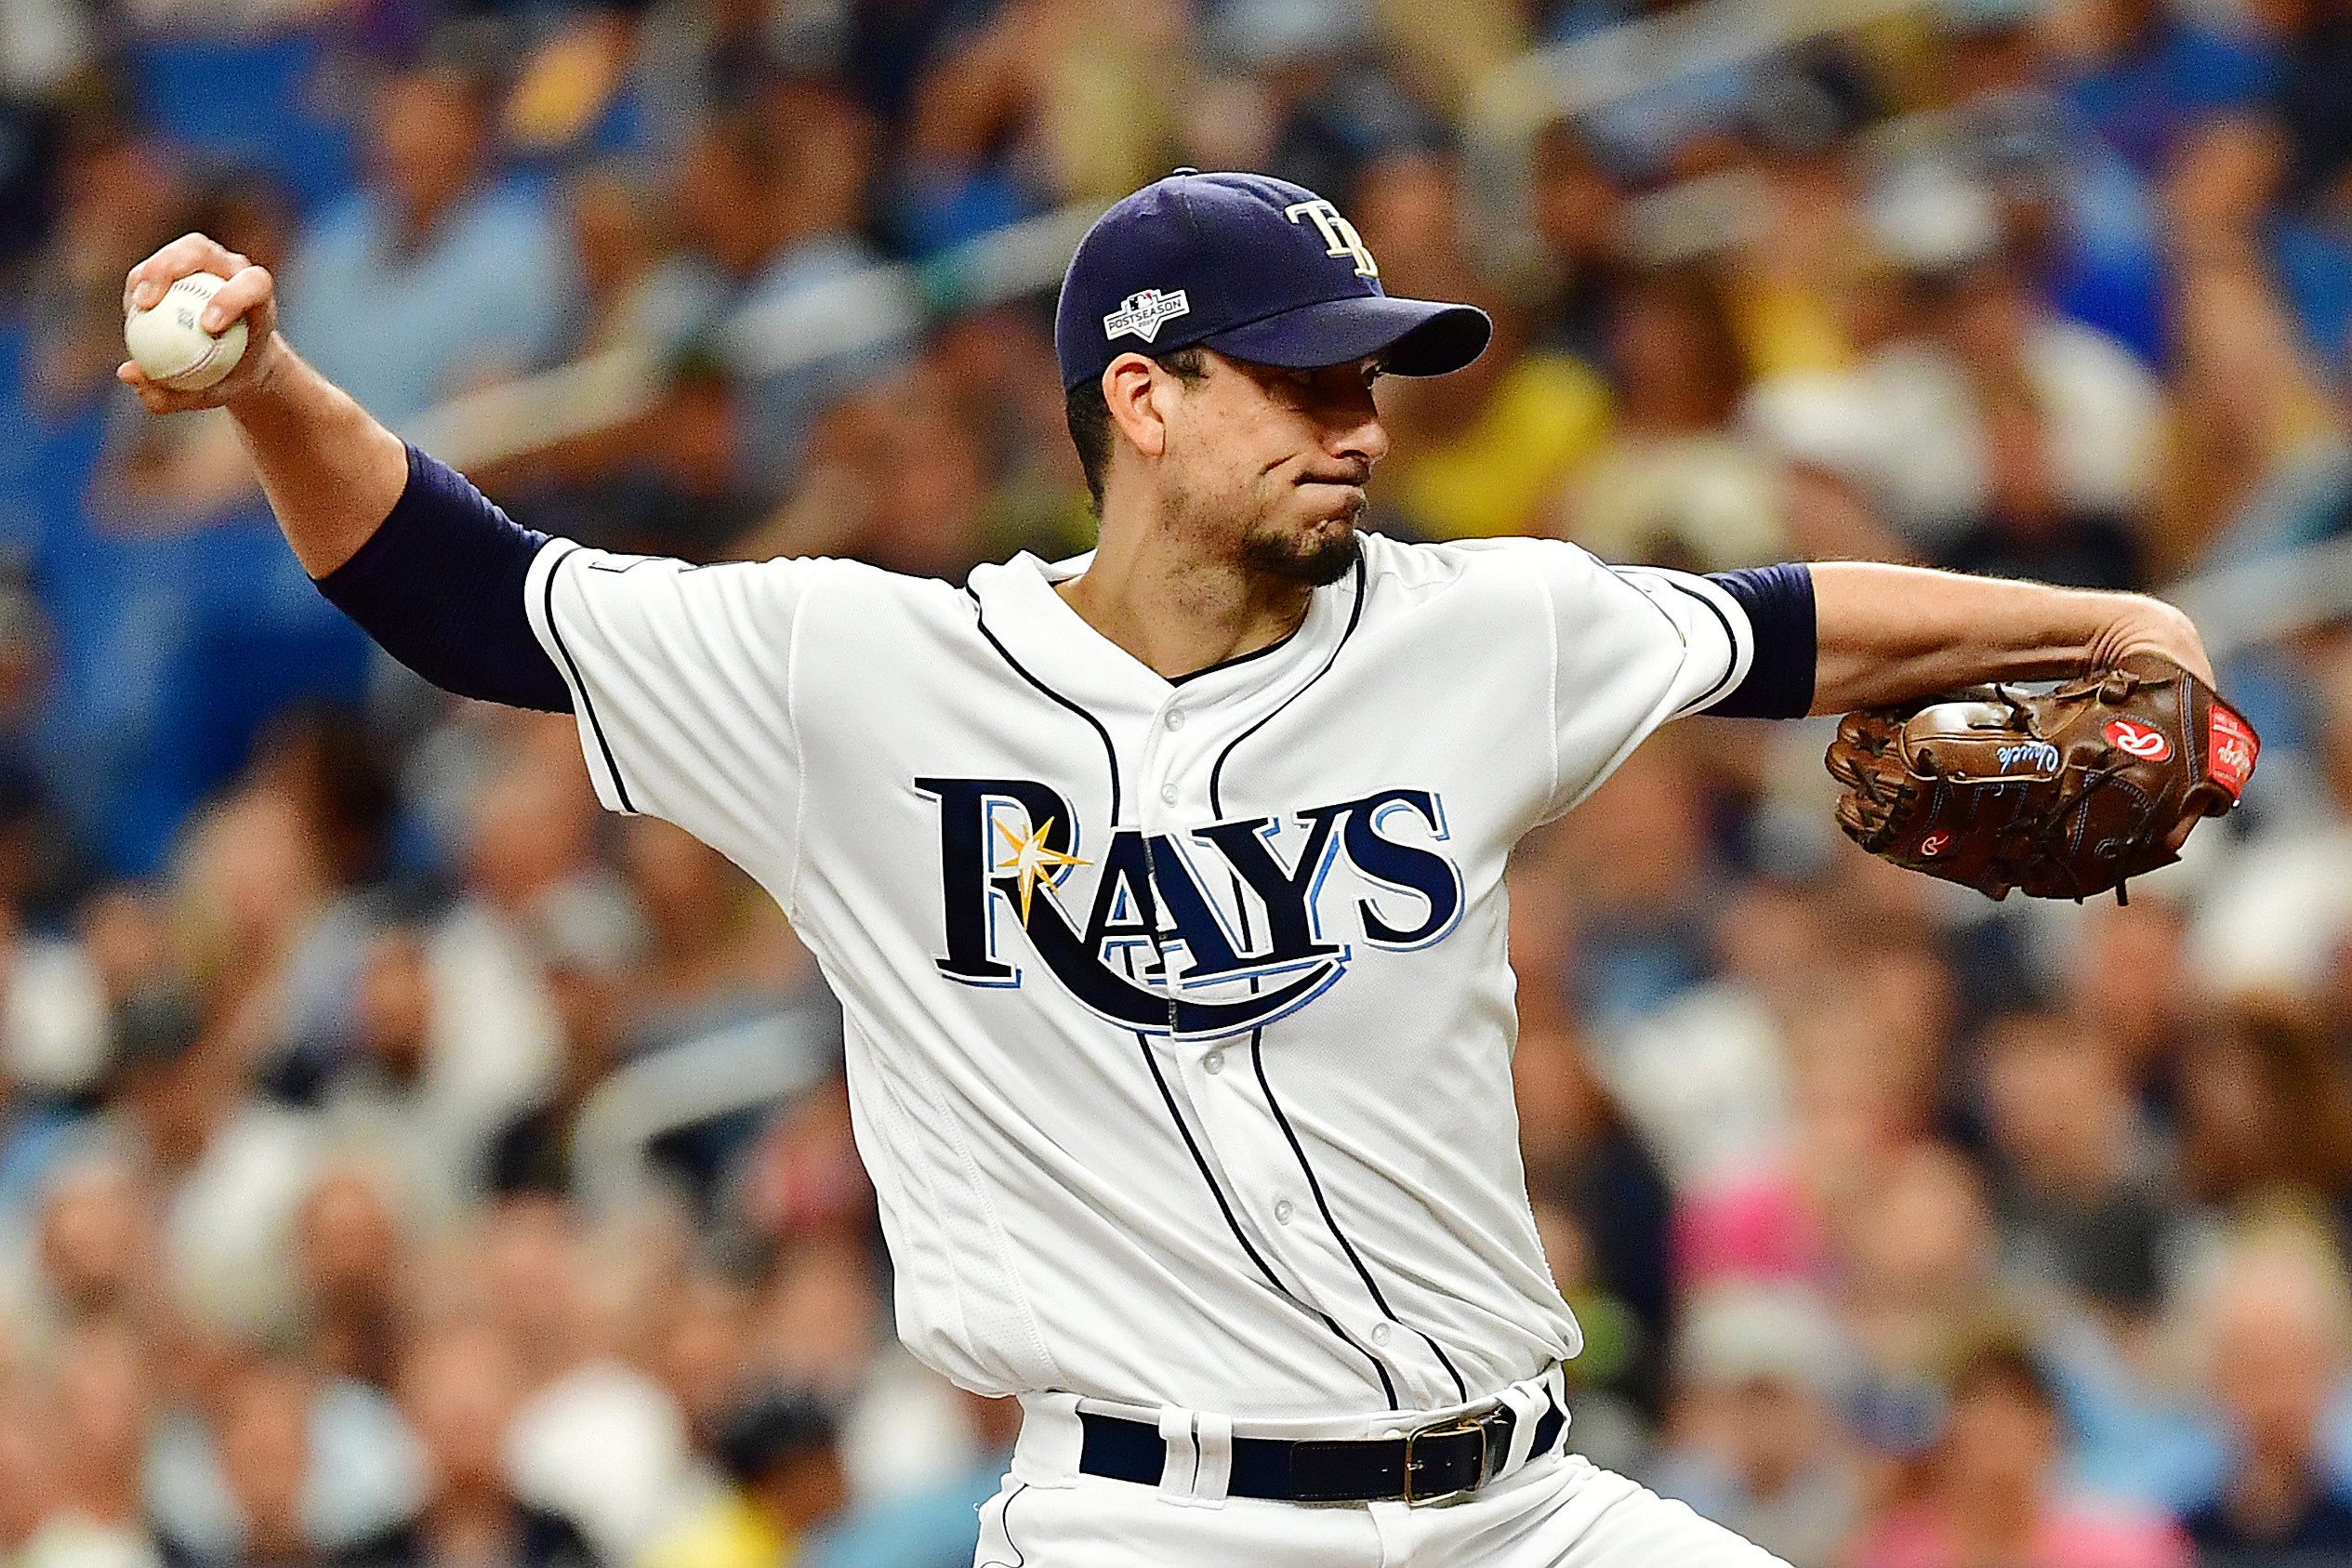 tampa bay rays pummel zach greinke charlie morton clutch vs houston astros to force game 4 https www abcactionnews com sports rays pummel greinke morton clutch vs astros to force game 4